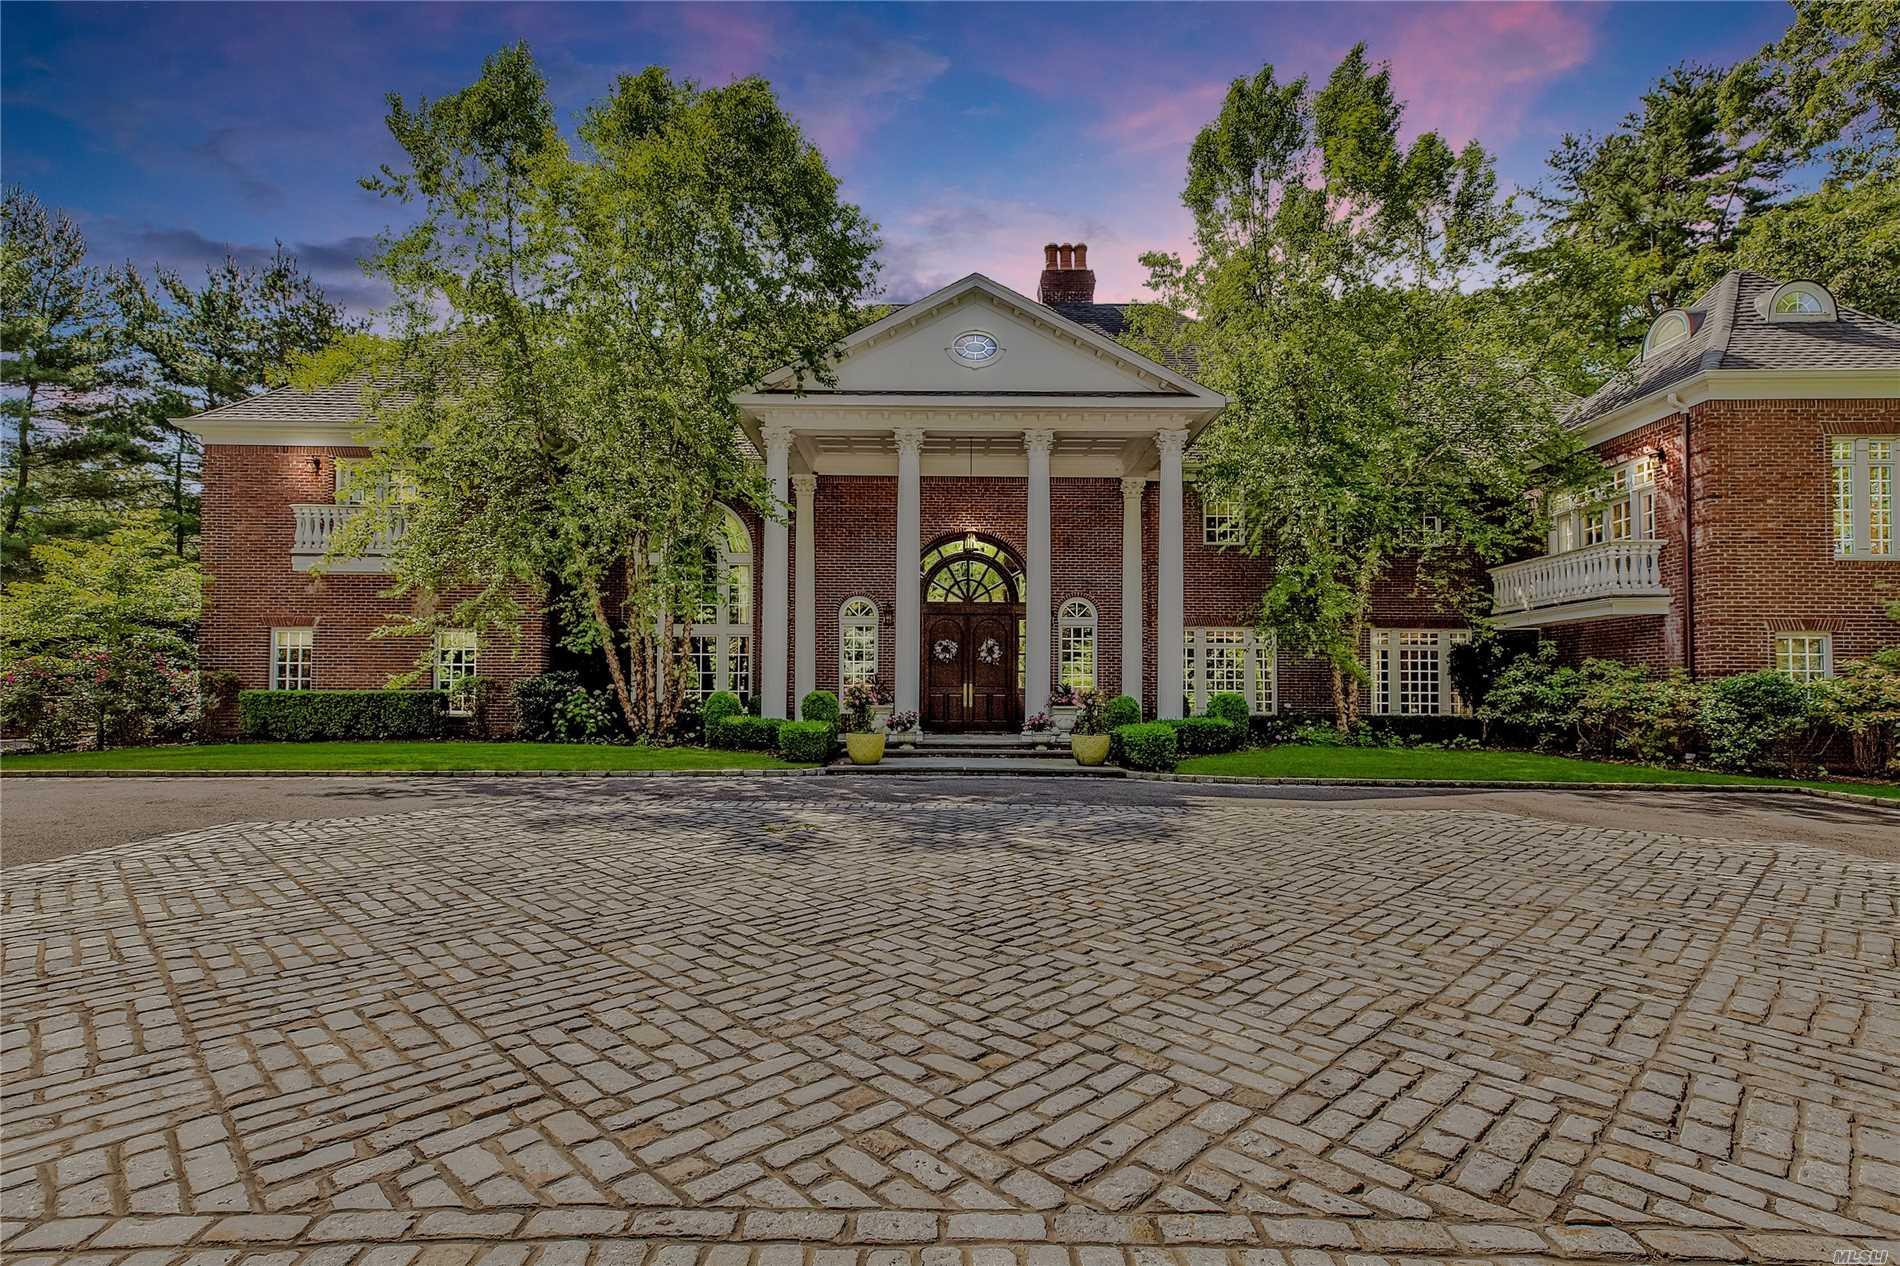 Oyster Bay. Unique & Eminent Brick Colonial In The Village Of Matinecock. This Remarkable 6-Bedroom, 6.5 Bath Home, With Intricate & Charming Detailing Throughout, Features Kitchen With 2 Granite Islands, Bar Area, Sitting Room With Cupola, Library With Built In Cabinetry & Hidden Doors, Elegant & Beautiful Moldings, Coffered & Vaulted Ceilings Throughout. Featuring Ig Heated Pool With Pool House, Hartru Tennis Court, Golf Tee & Koi Pond. All Situated On Over 5 Private Acres & Much More.